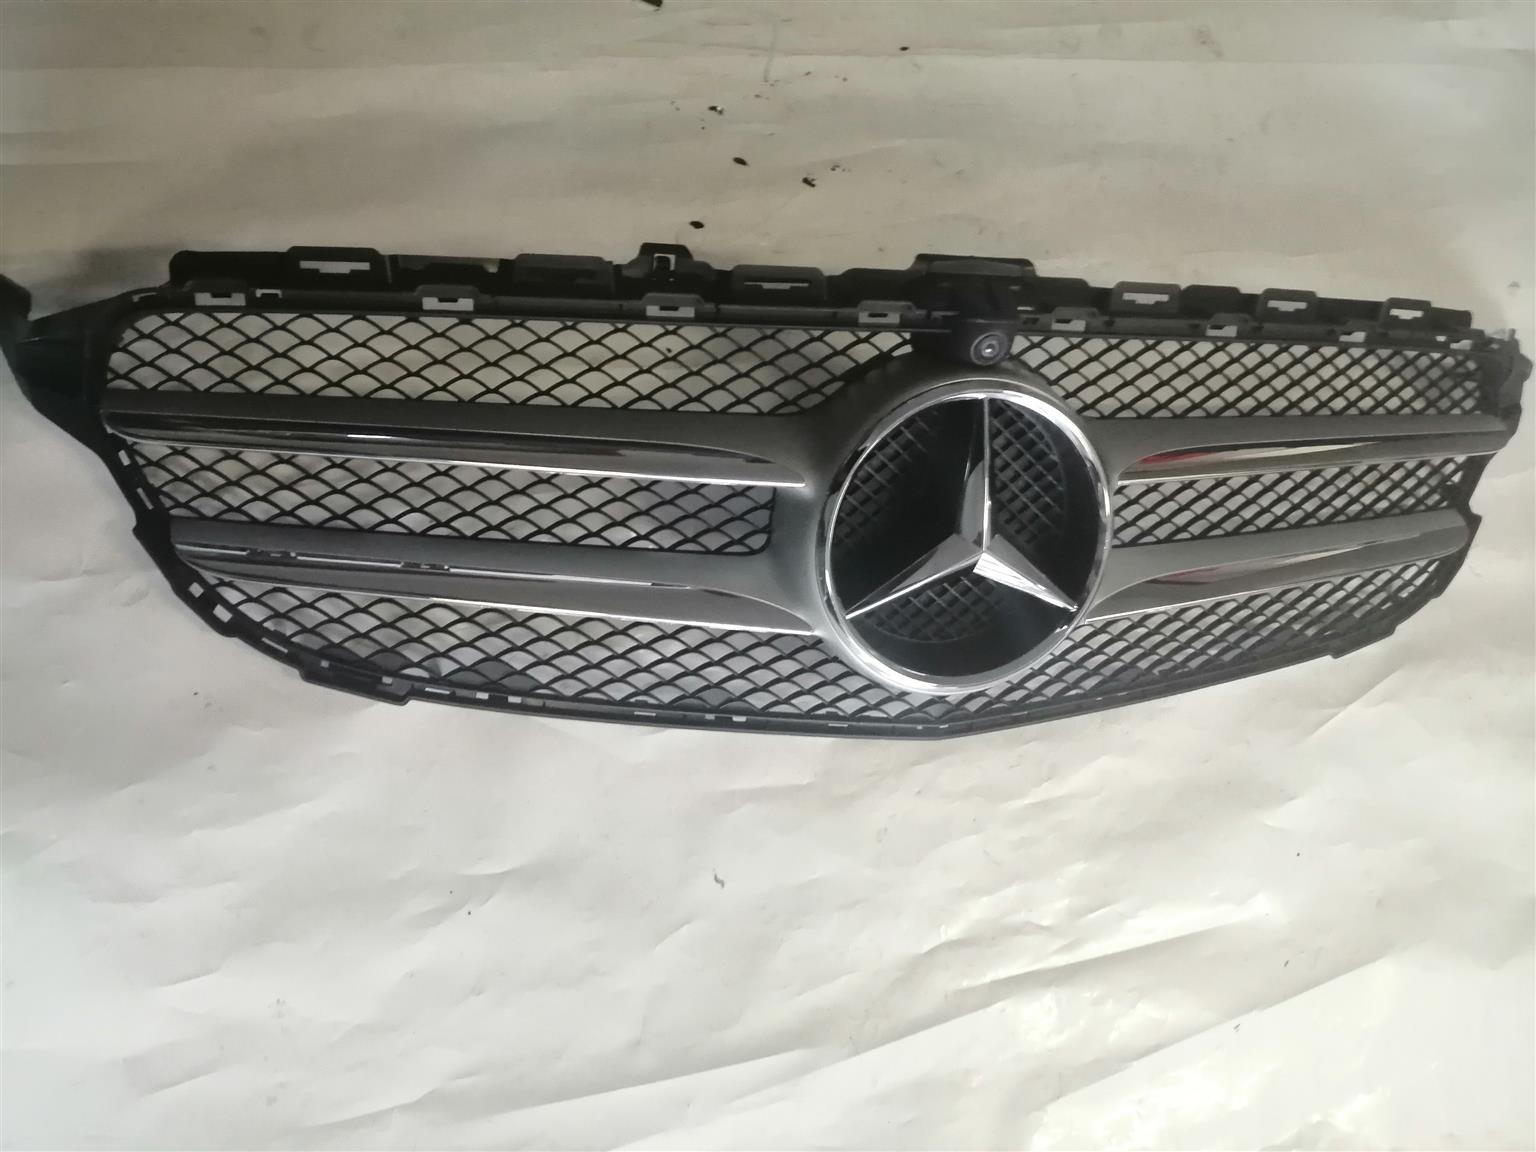 W205 GRILLE WITH CAMERA HOLE